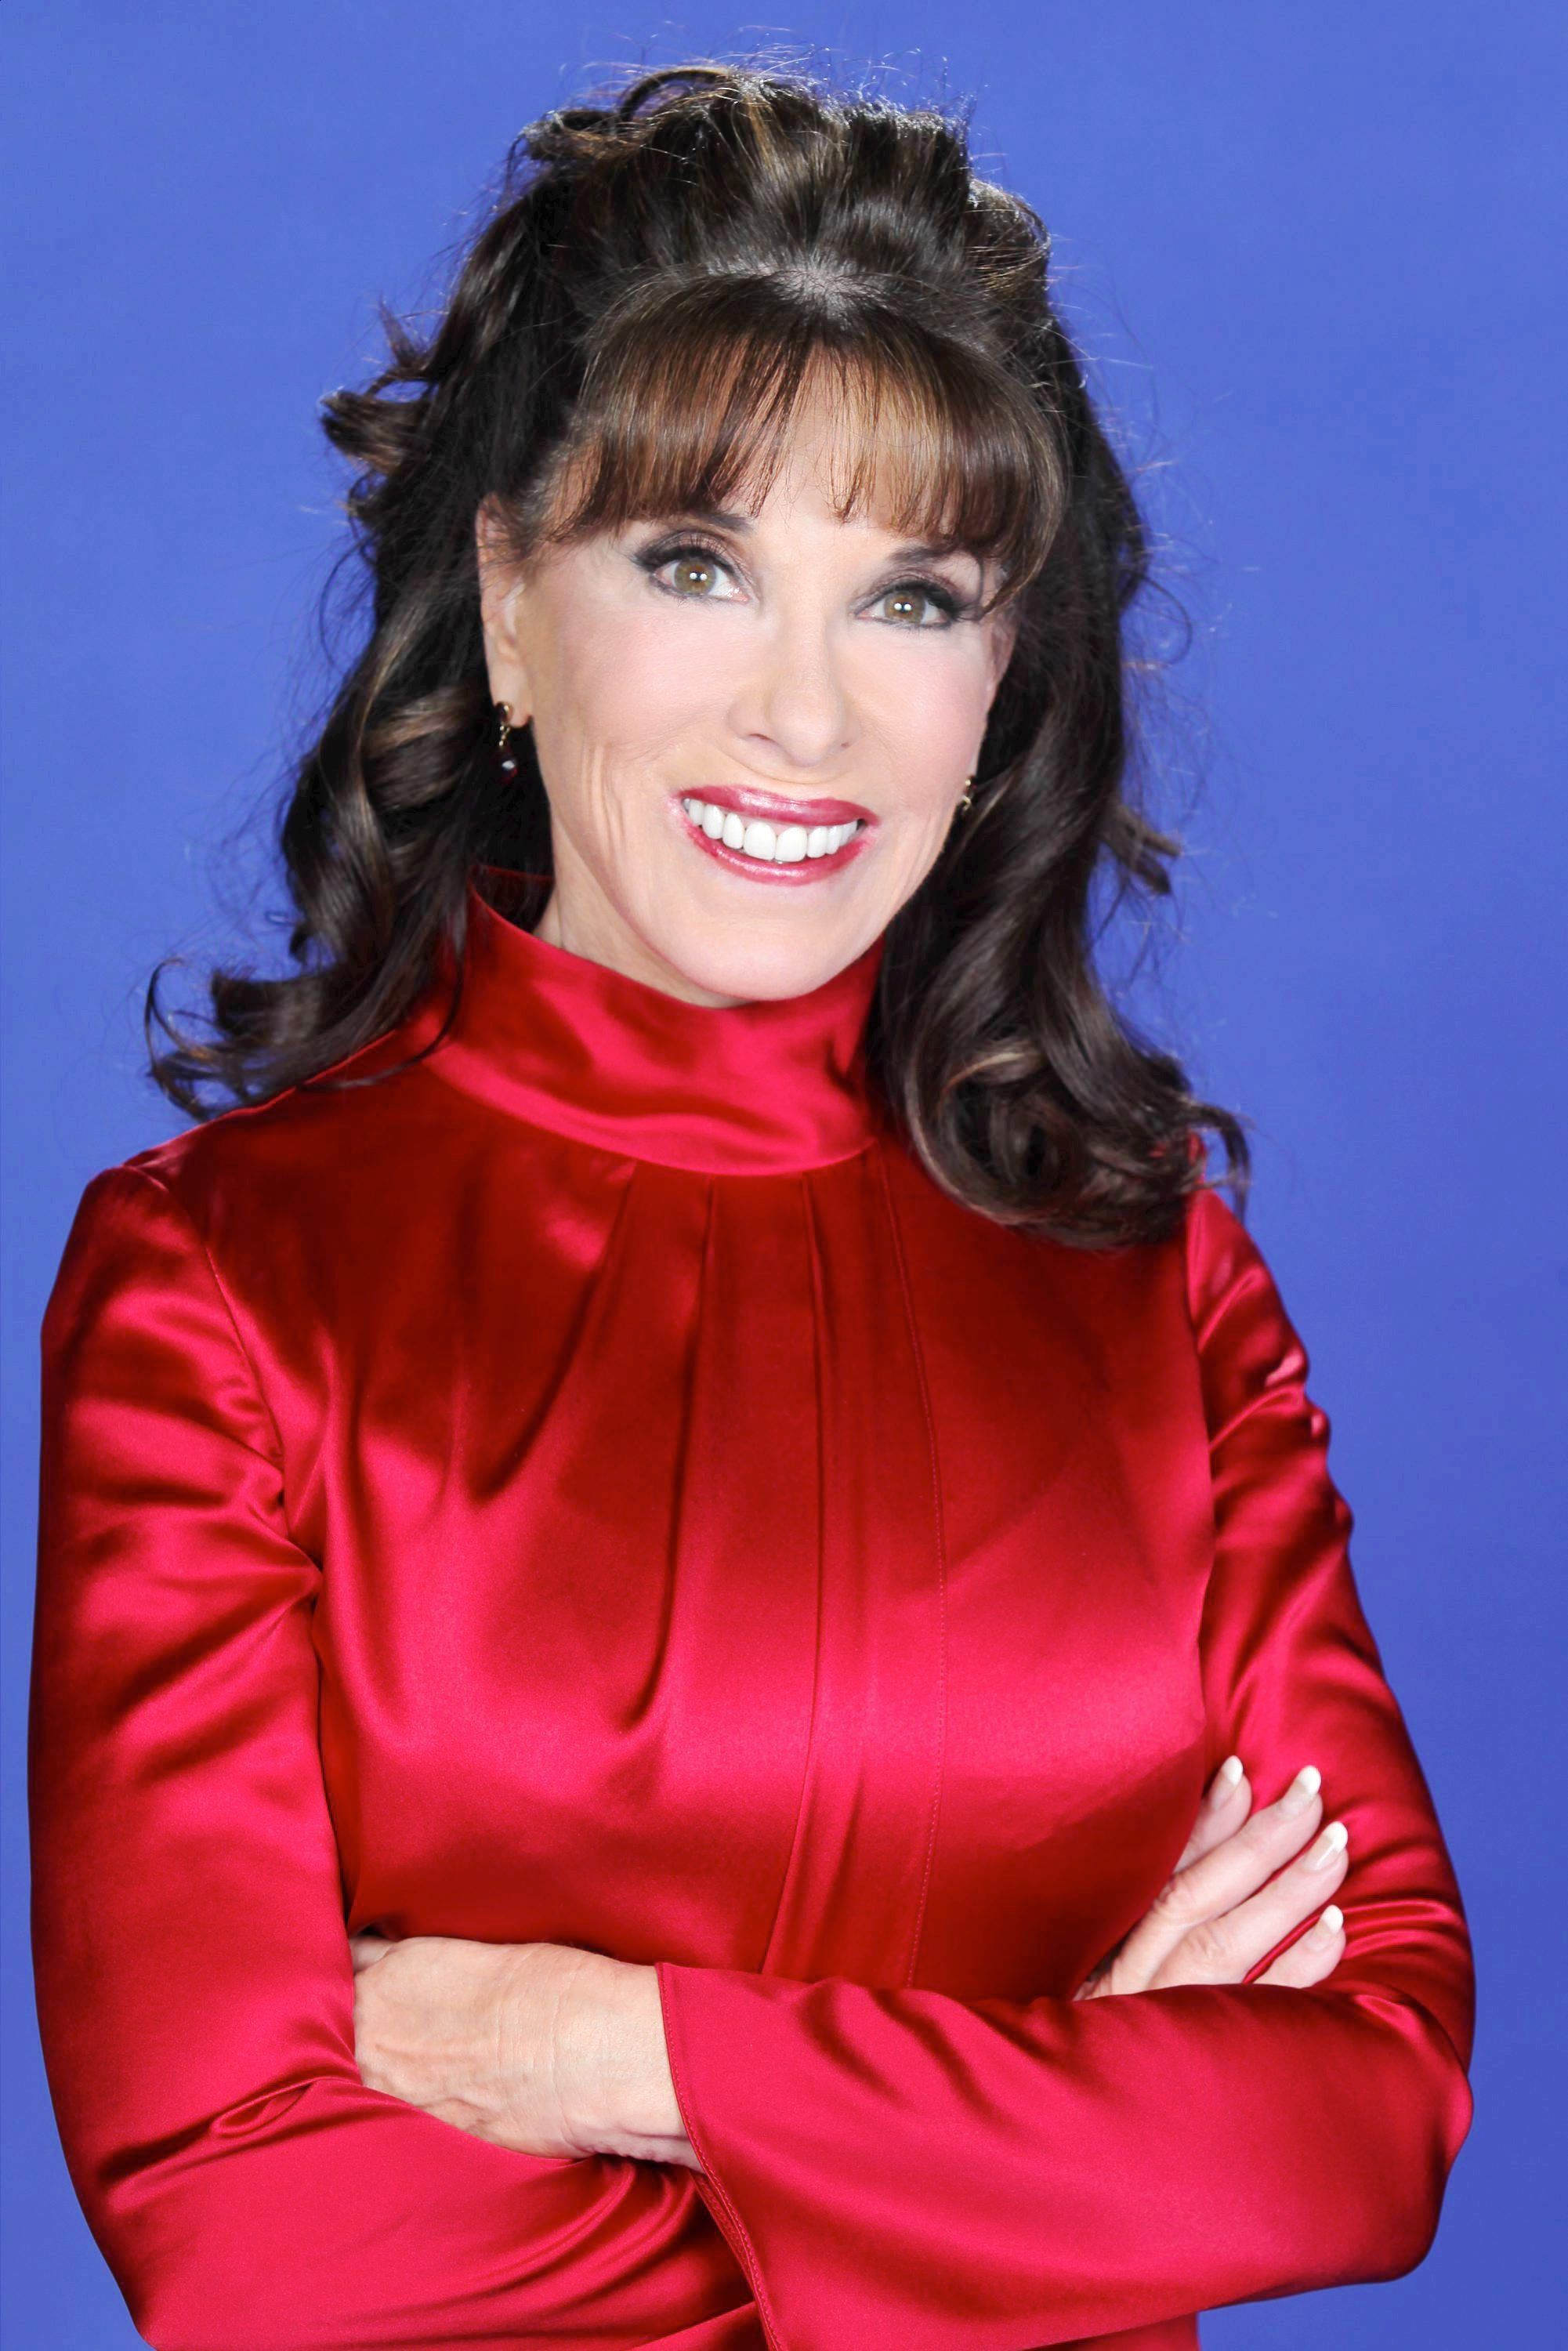 40th anniversary cast photos the young and the restless